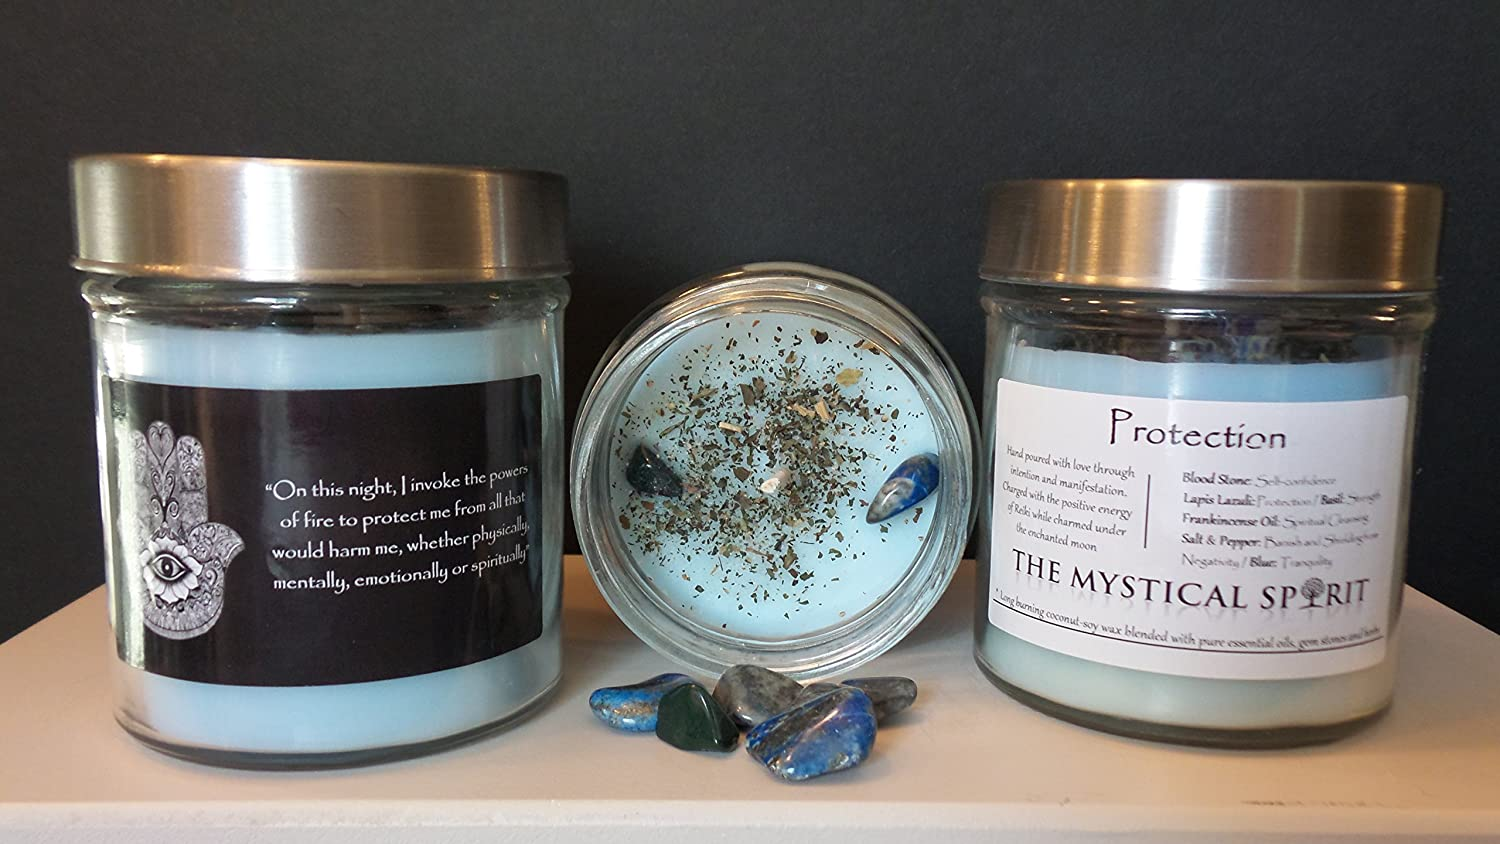 Protection: Soy-Coconut Wax Candle with Gemstones, Herbs, Essential Oils Wicca, Pagan, Spells